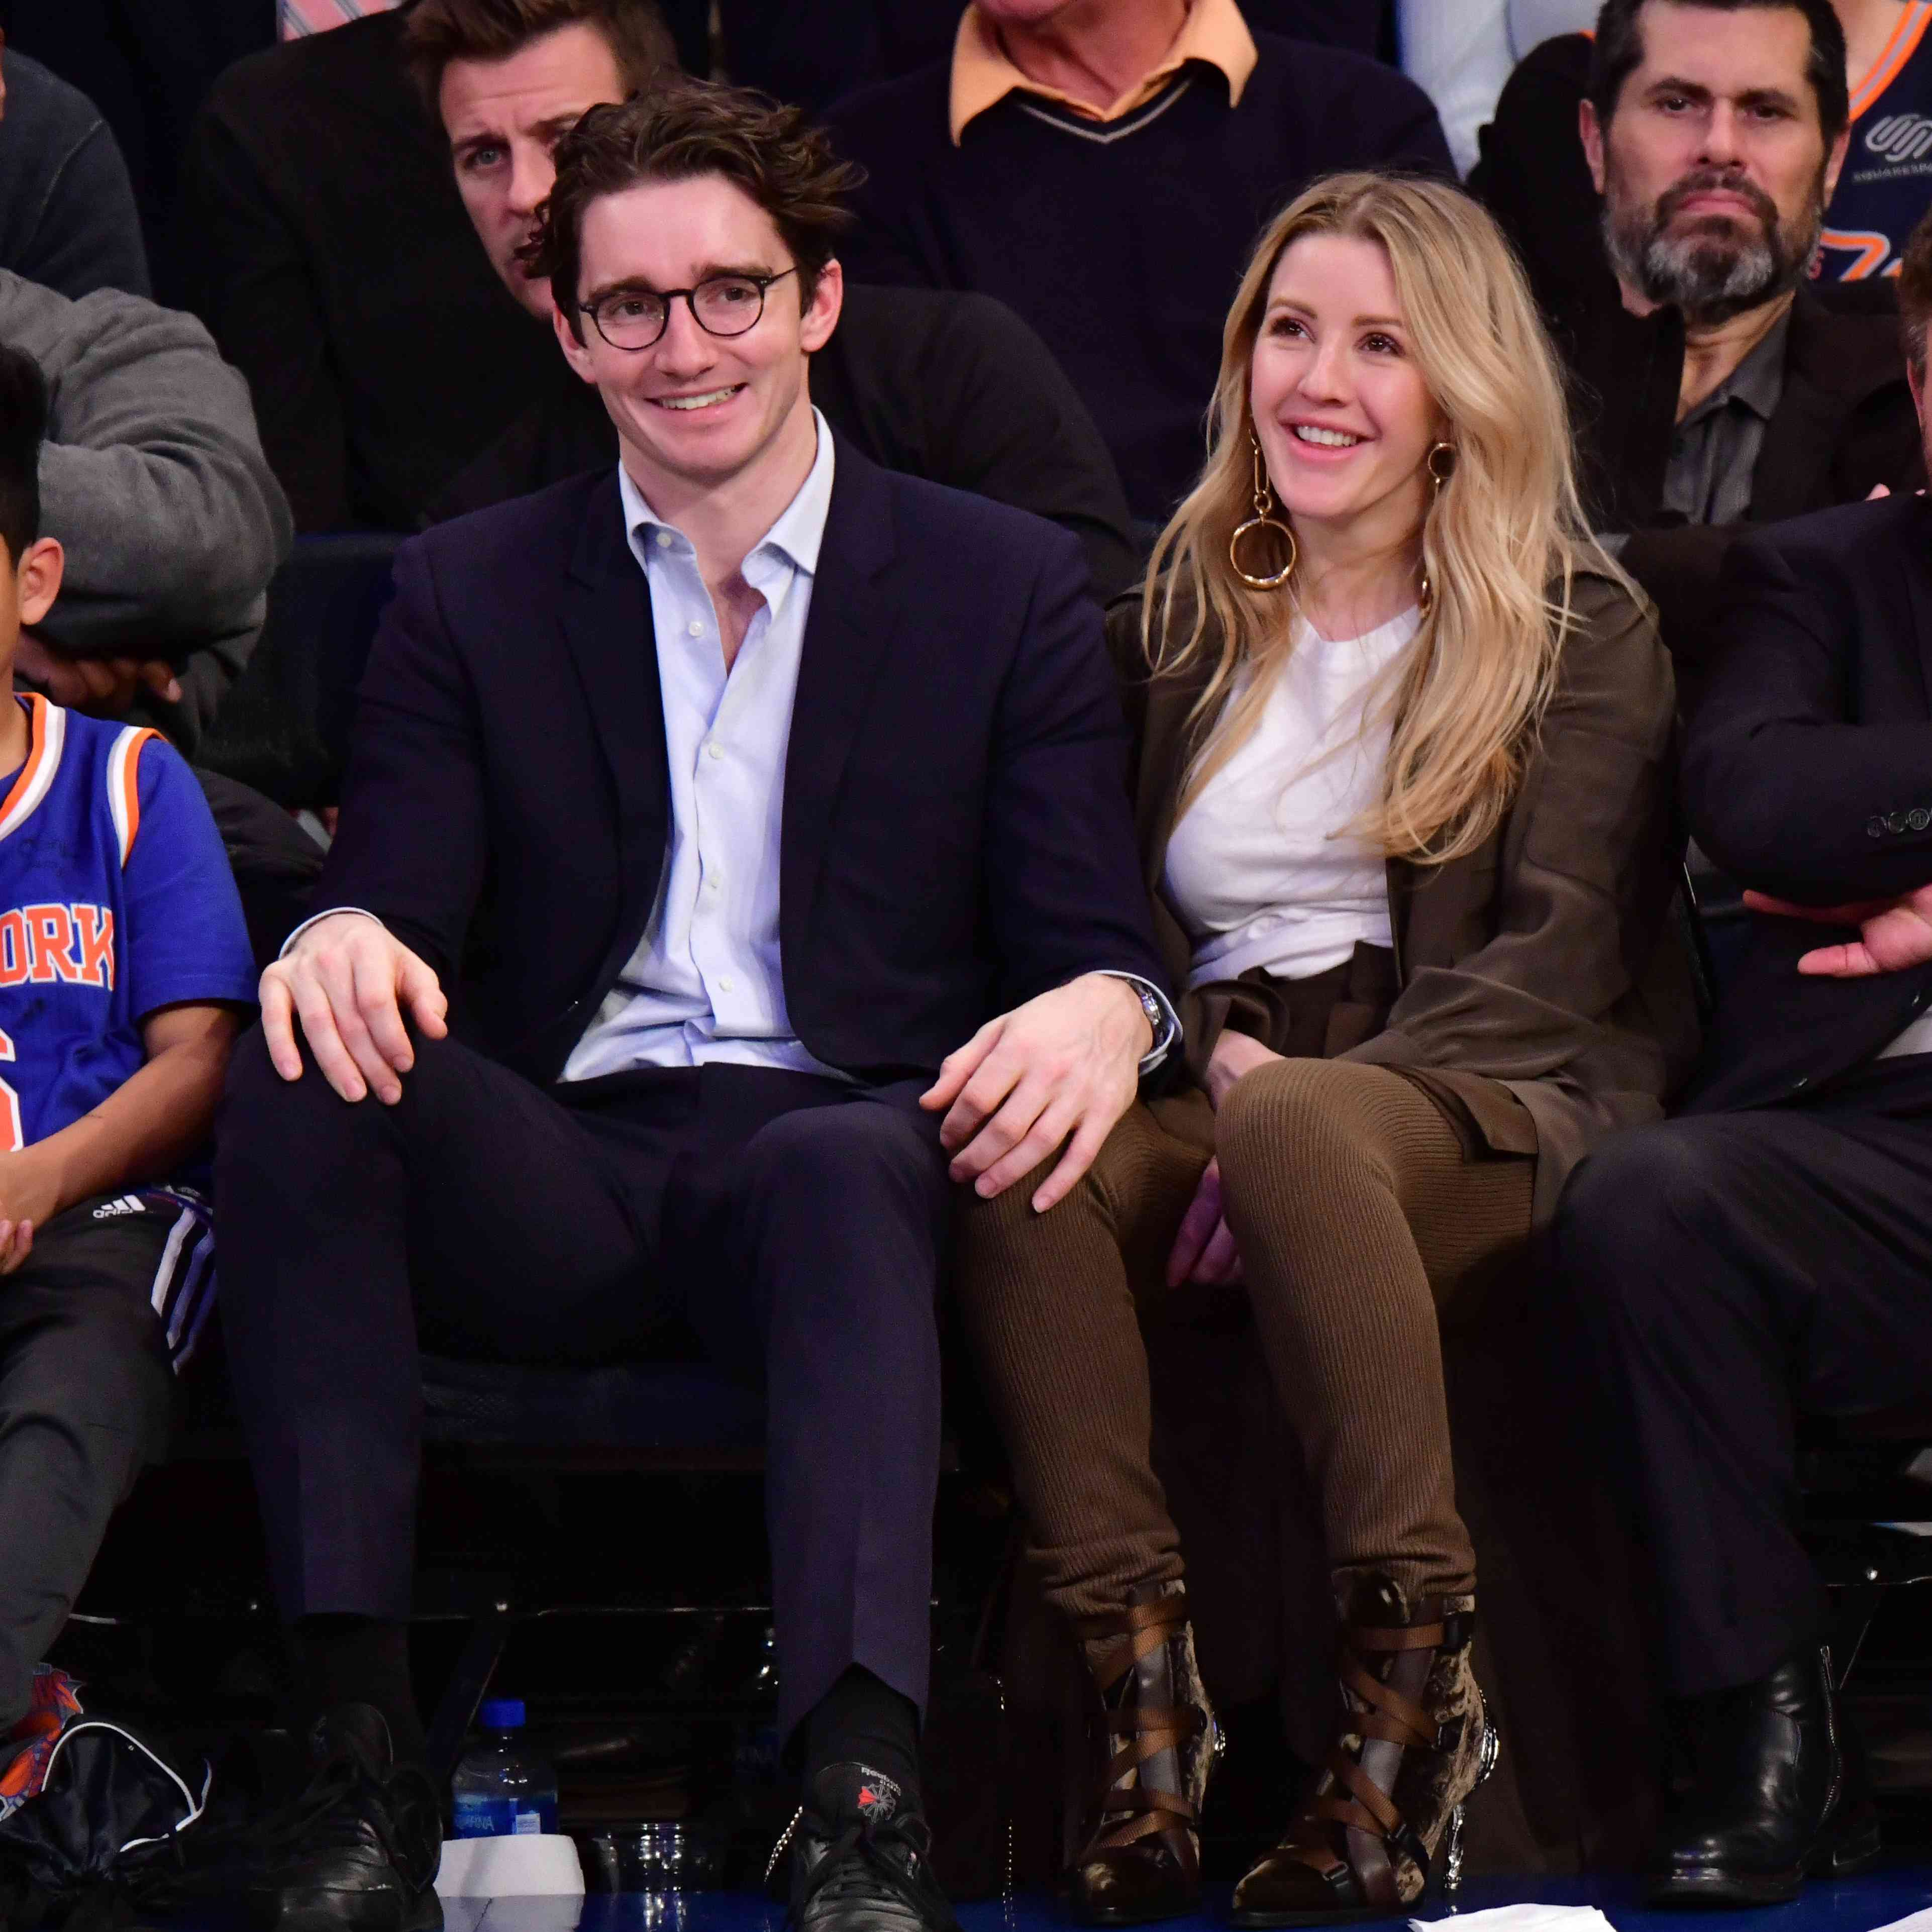 couple sitting courtside and basketball game